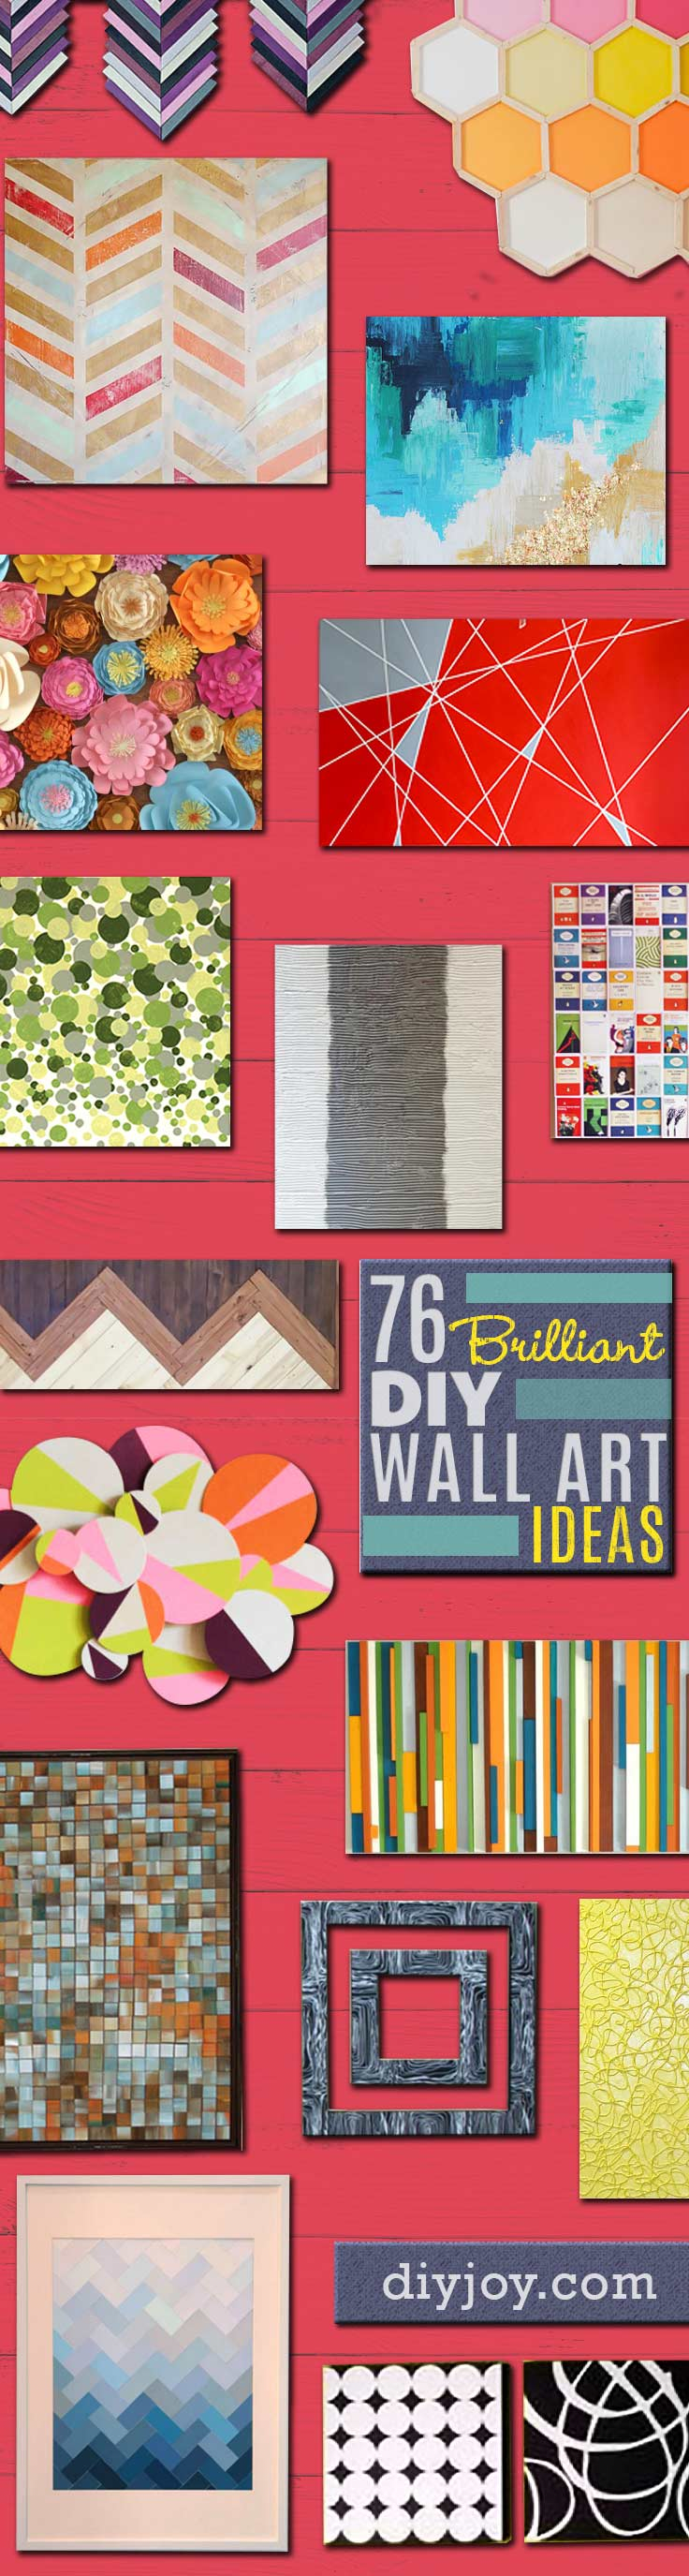 76 brilliant diy wall art ideas for your blank walls diy wall art ideas and do it yourself wall decor for living room bedroom solutioingenieria Choice Image